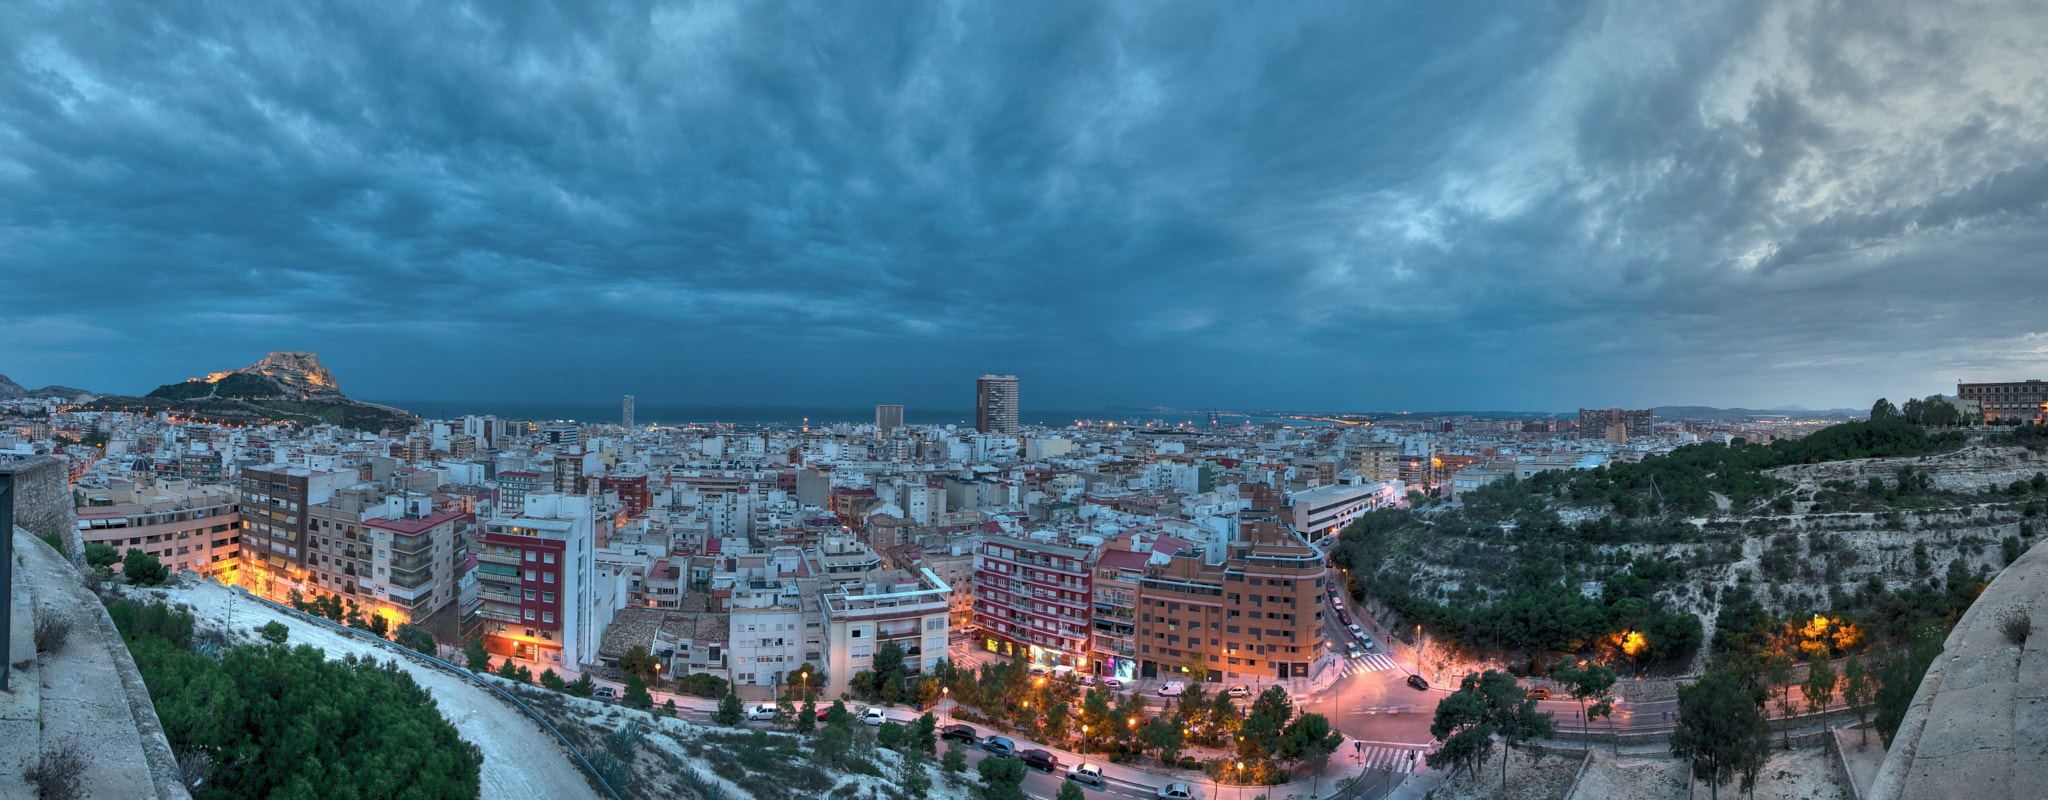 Photograph Alicante pano by Jordi Clariana on 500px